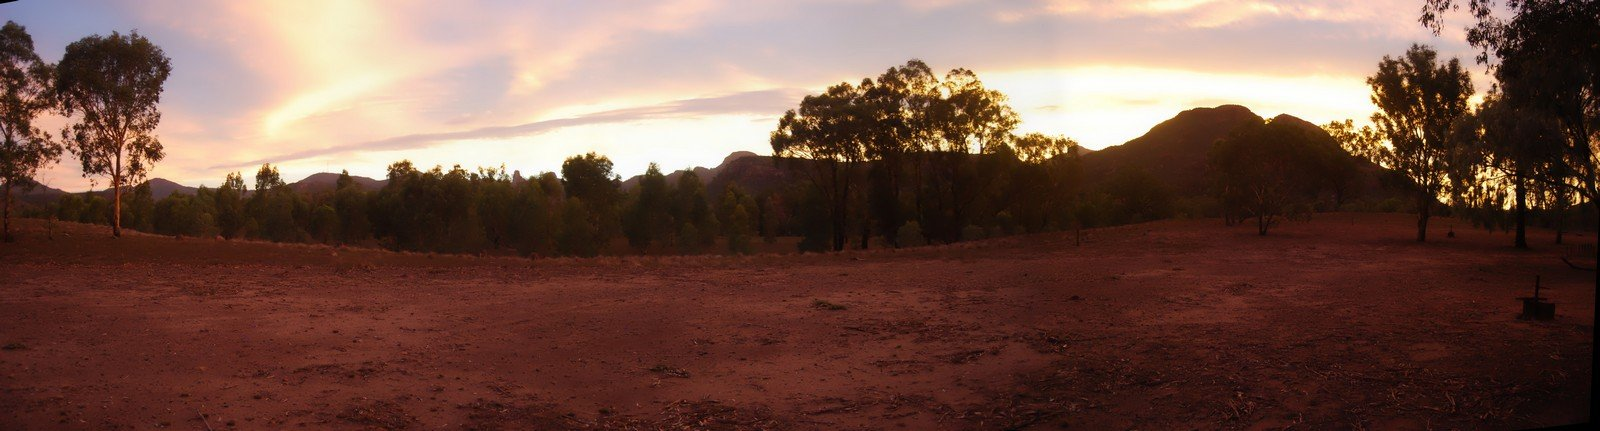 Warrumbungles Sunset